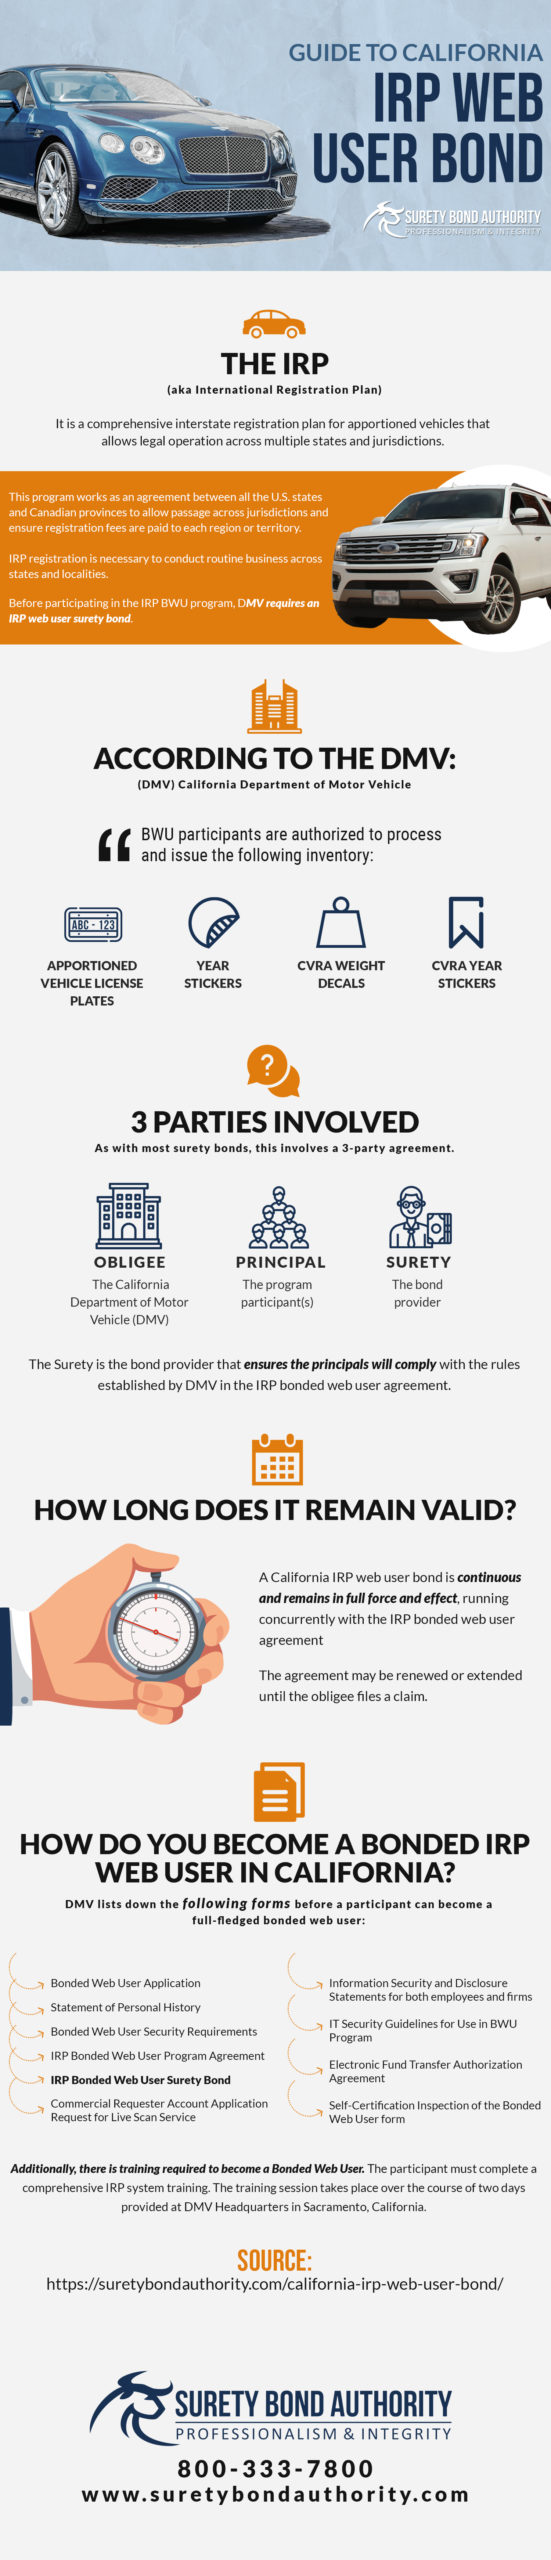 California IRP Web User Bond Infographic